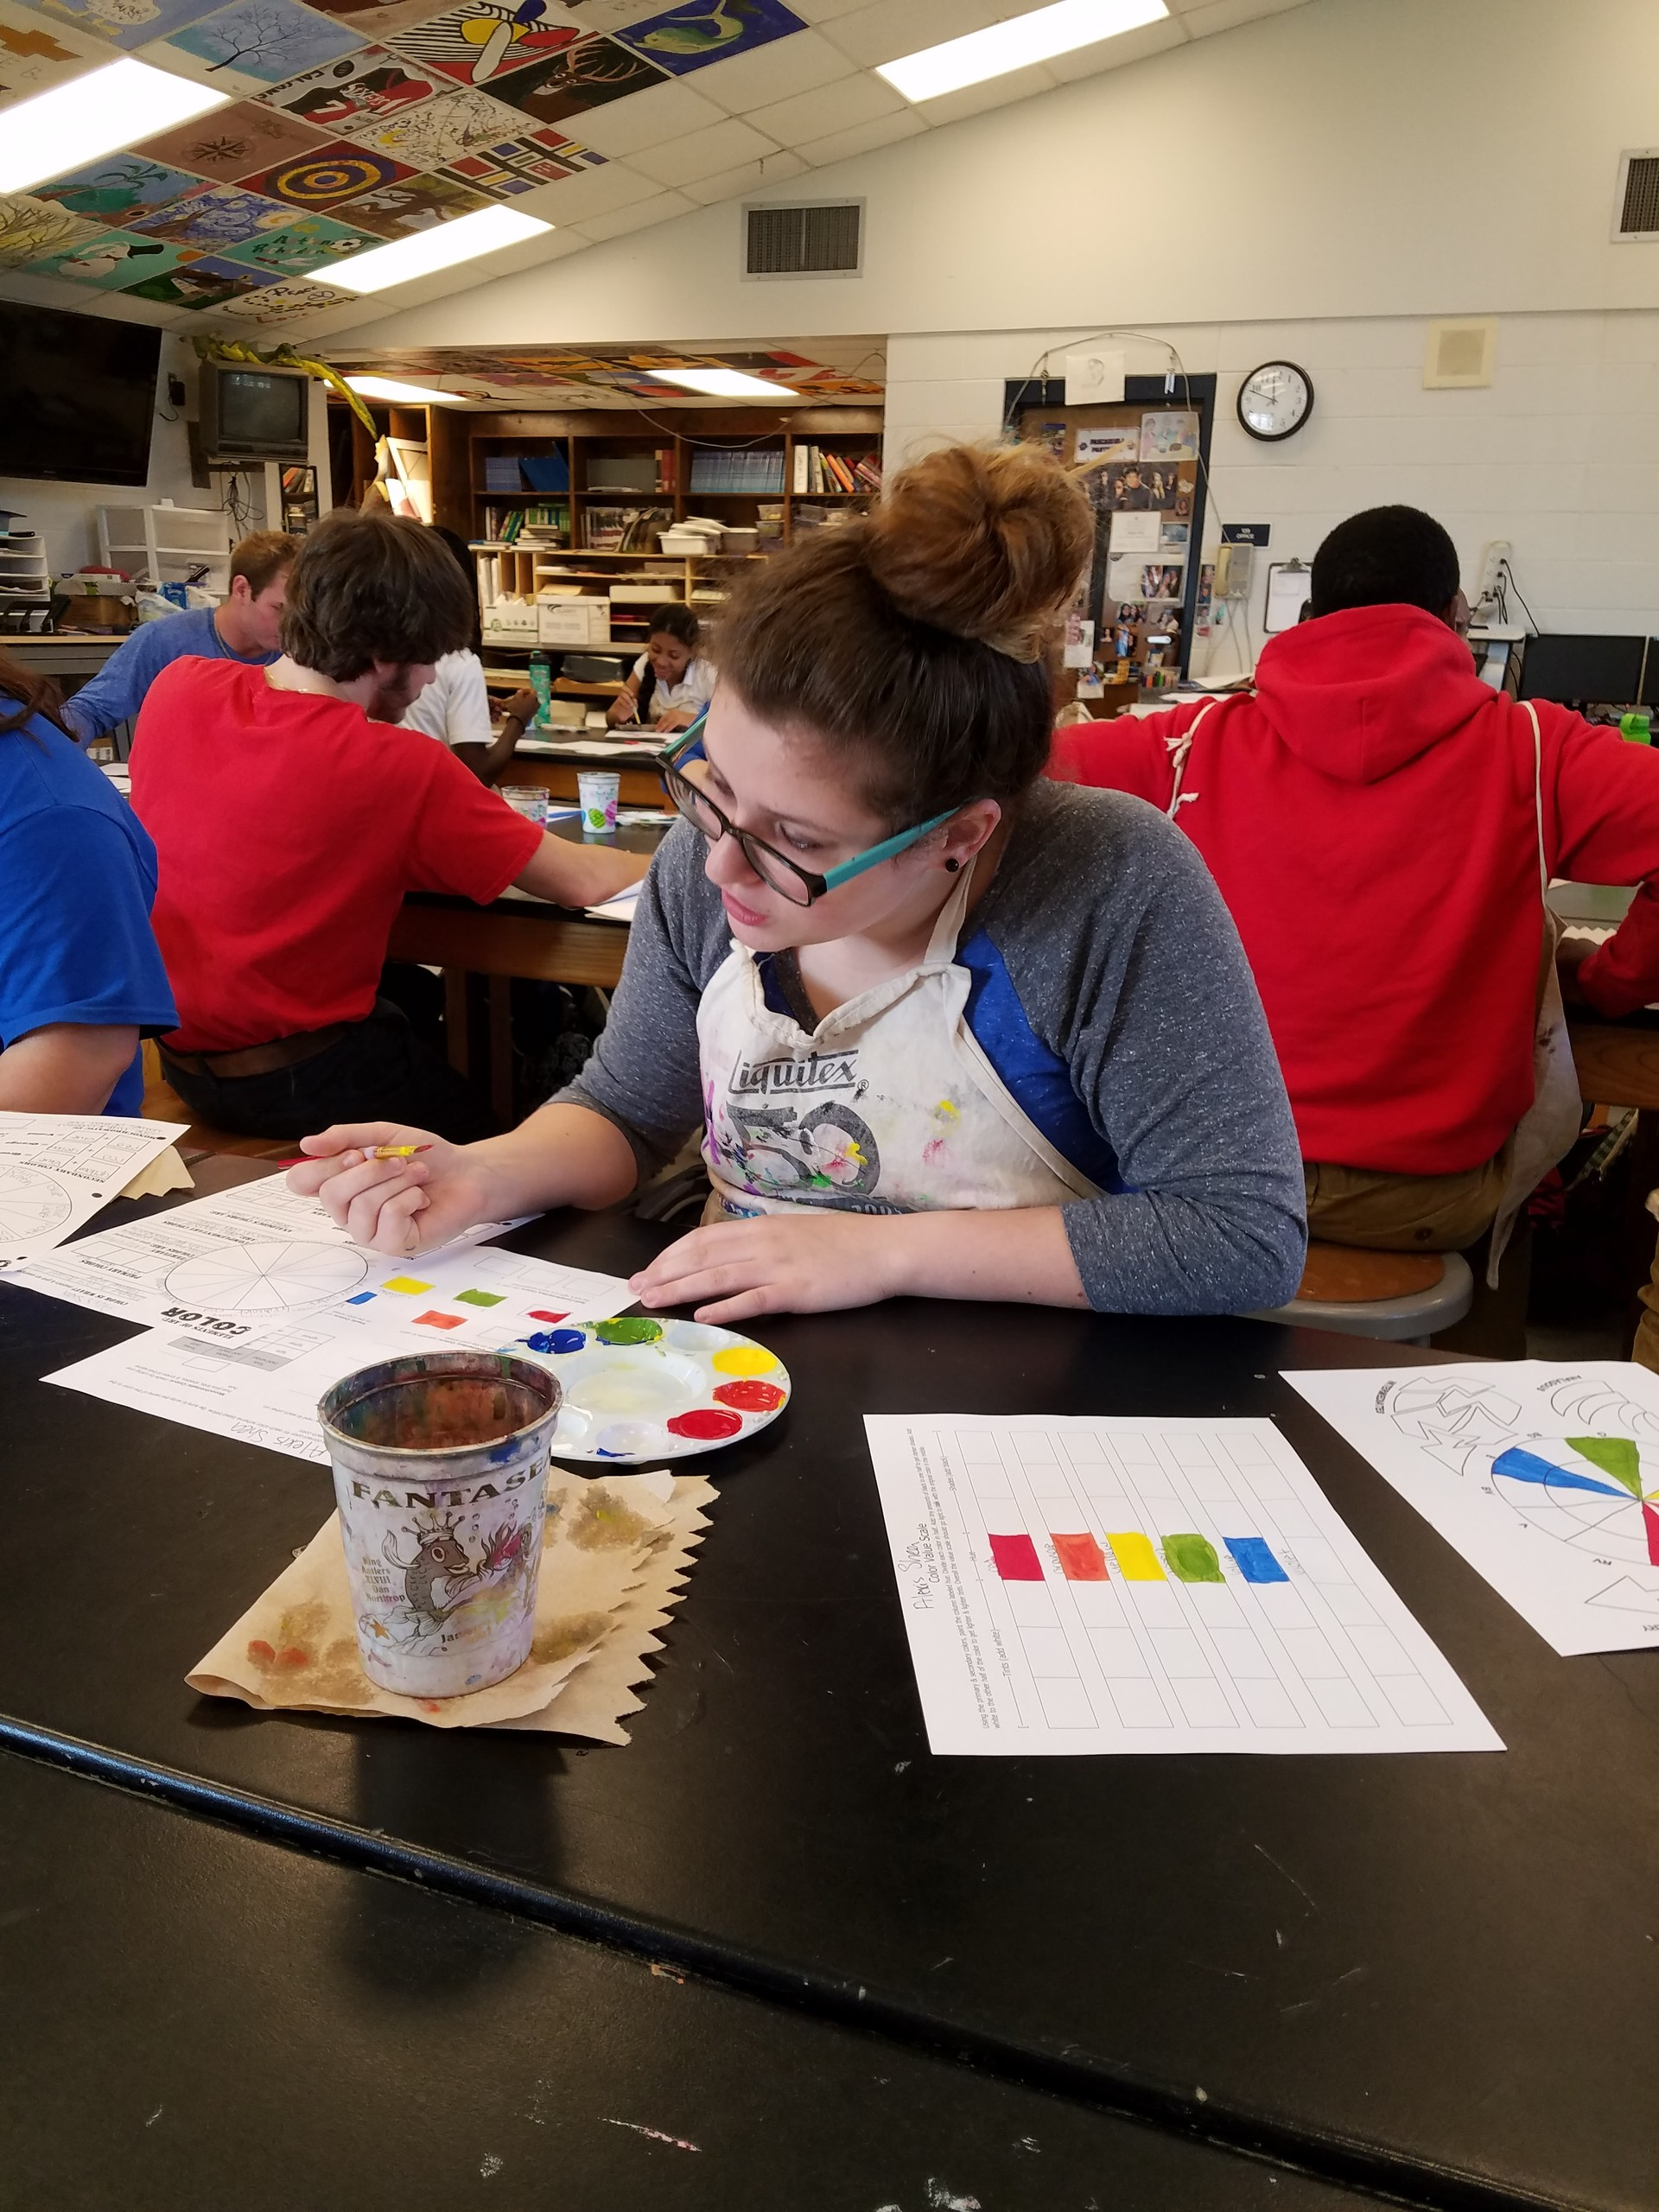 Student is applying knowledge of color by painting a color wheel